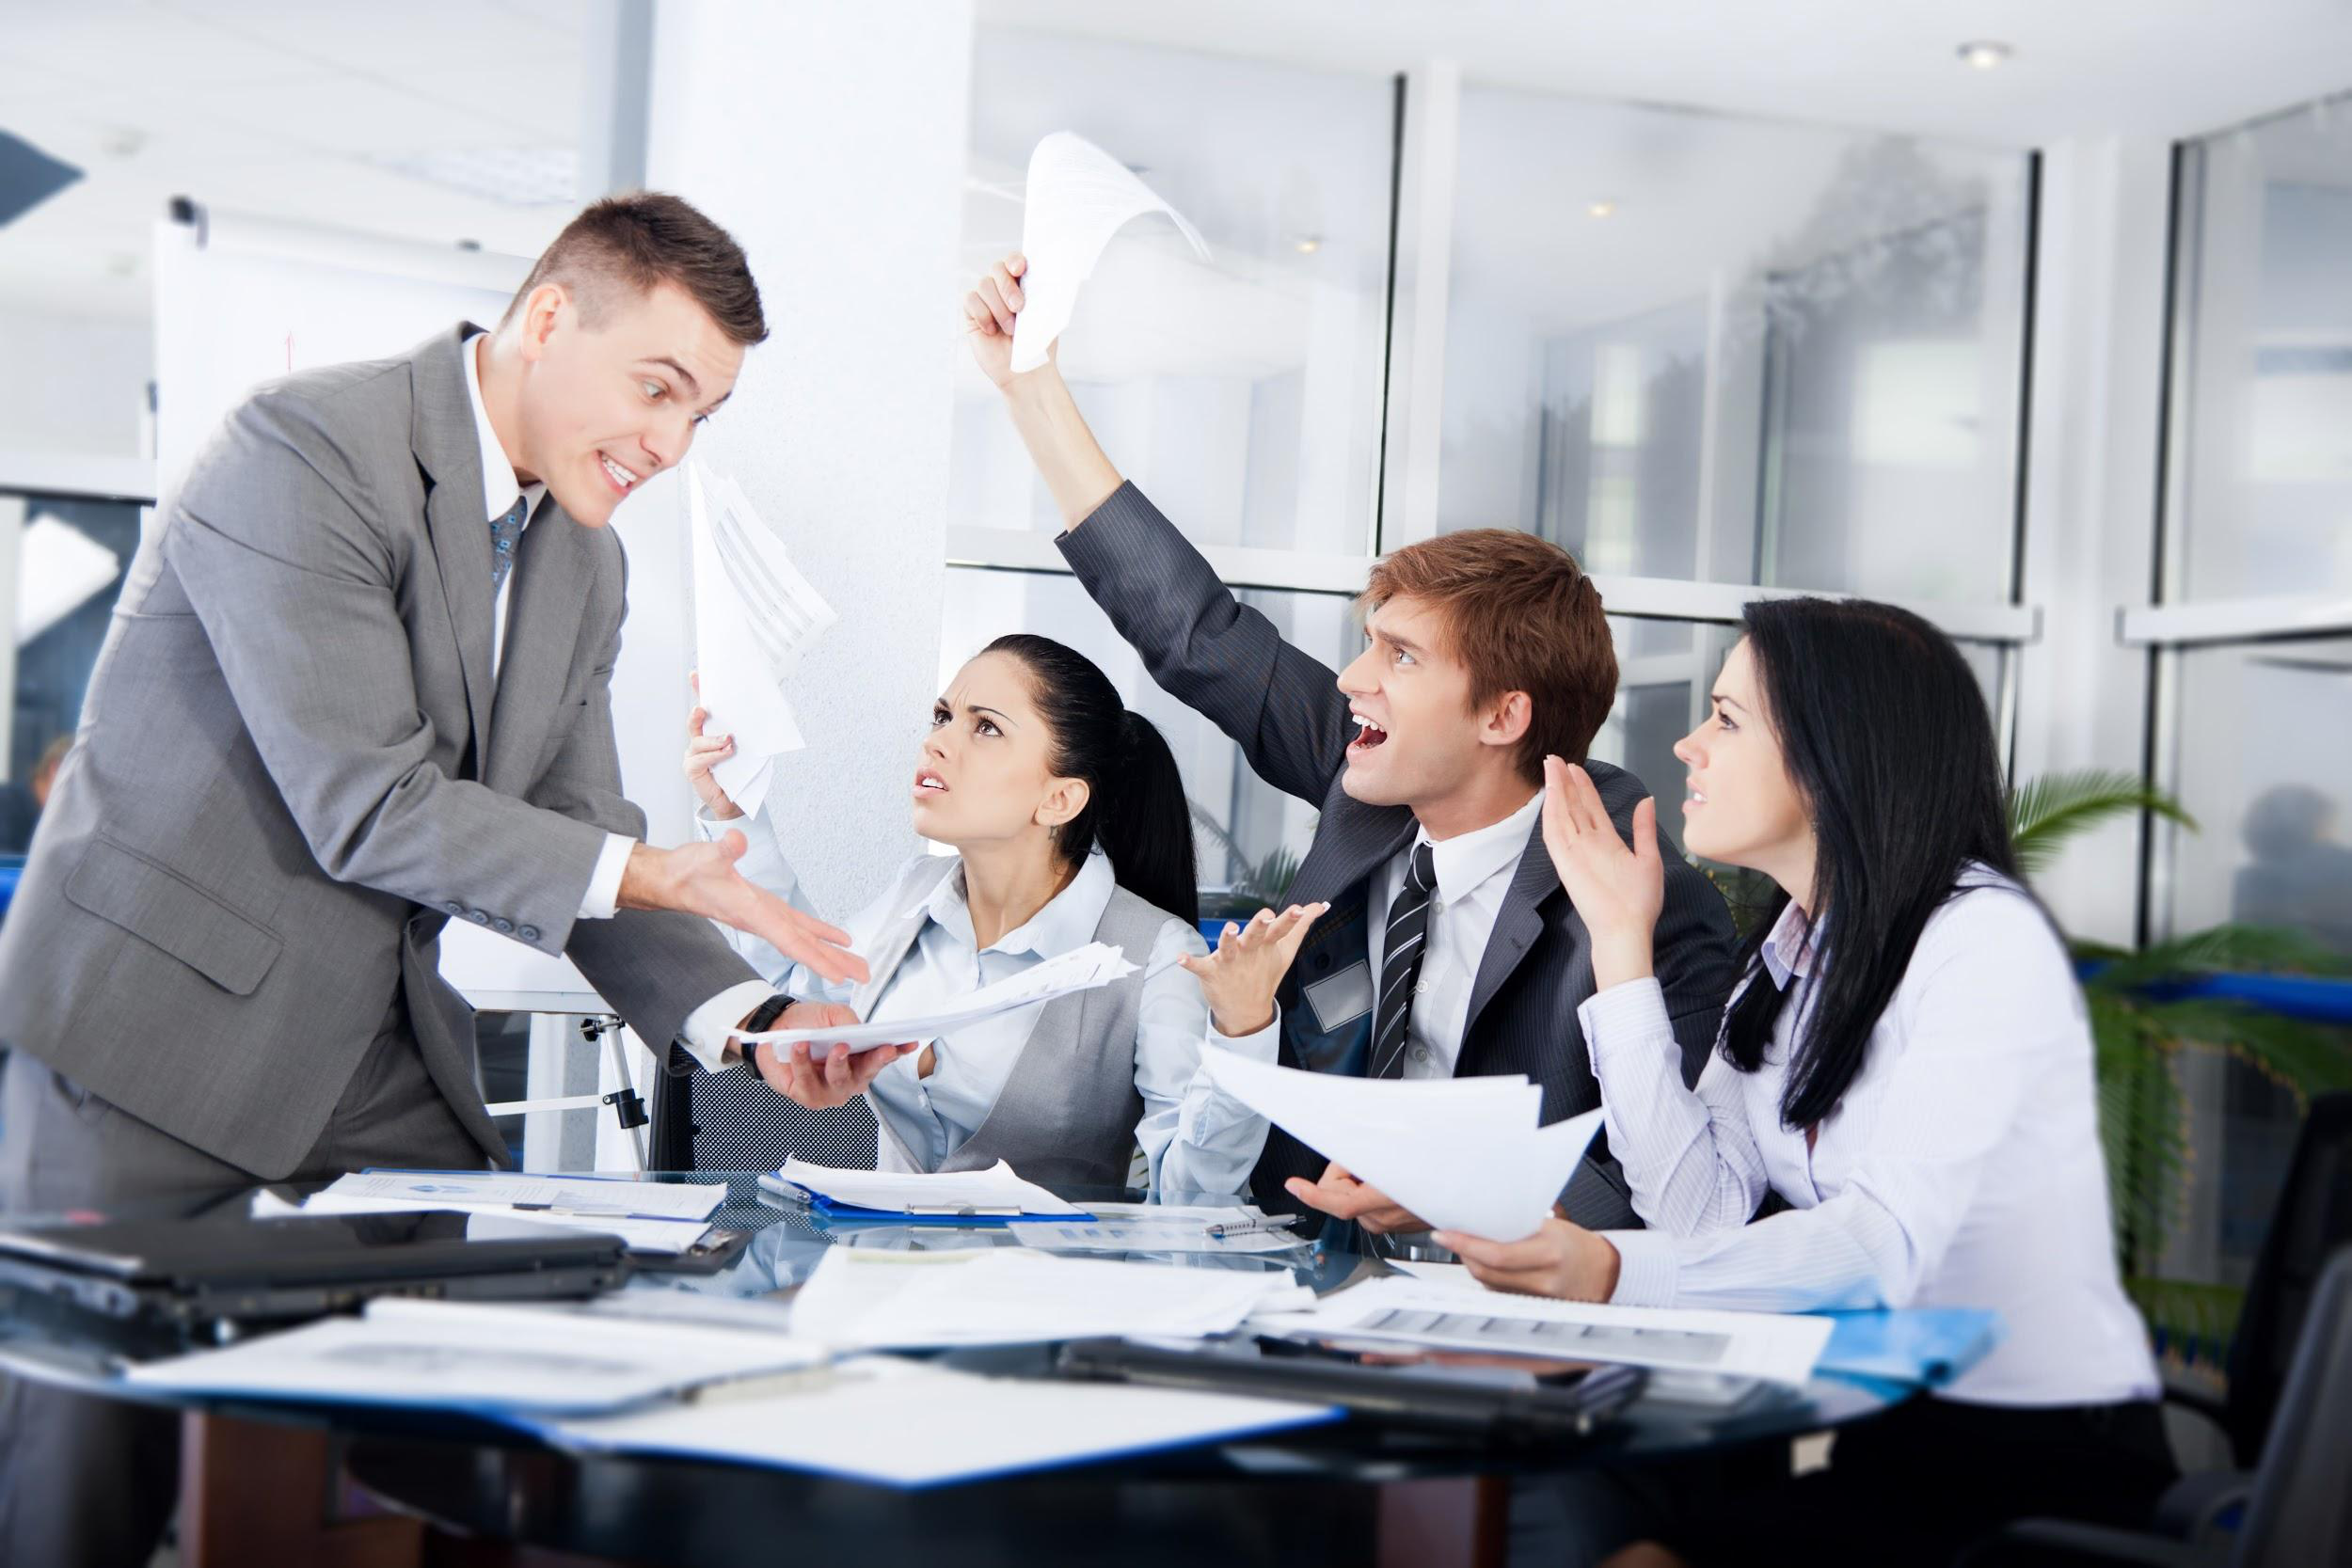 How Organizations Can Avoid & Reduce Workplace Conflicts